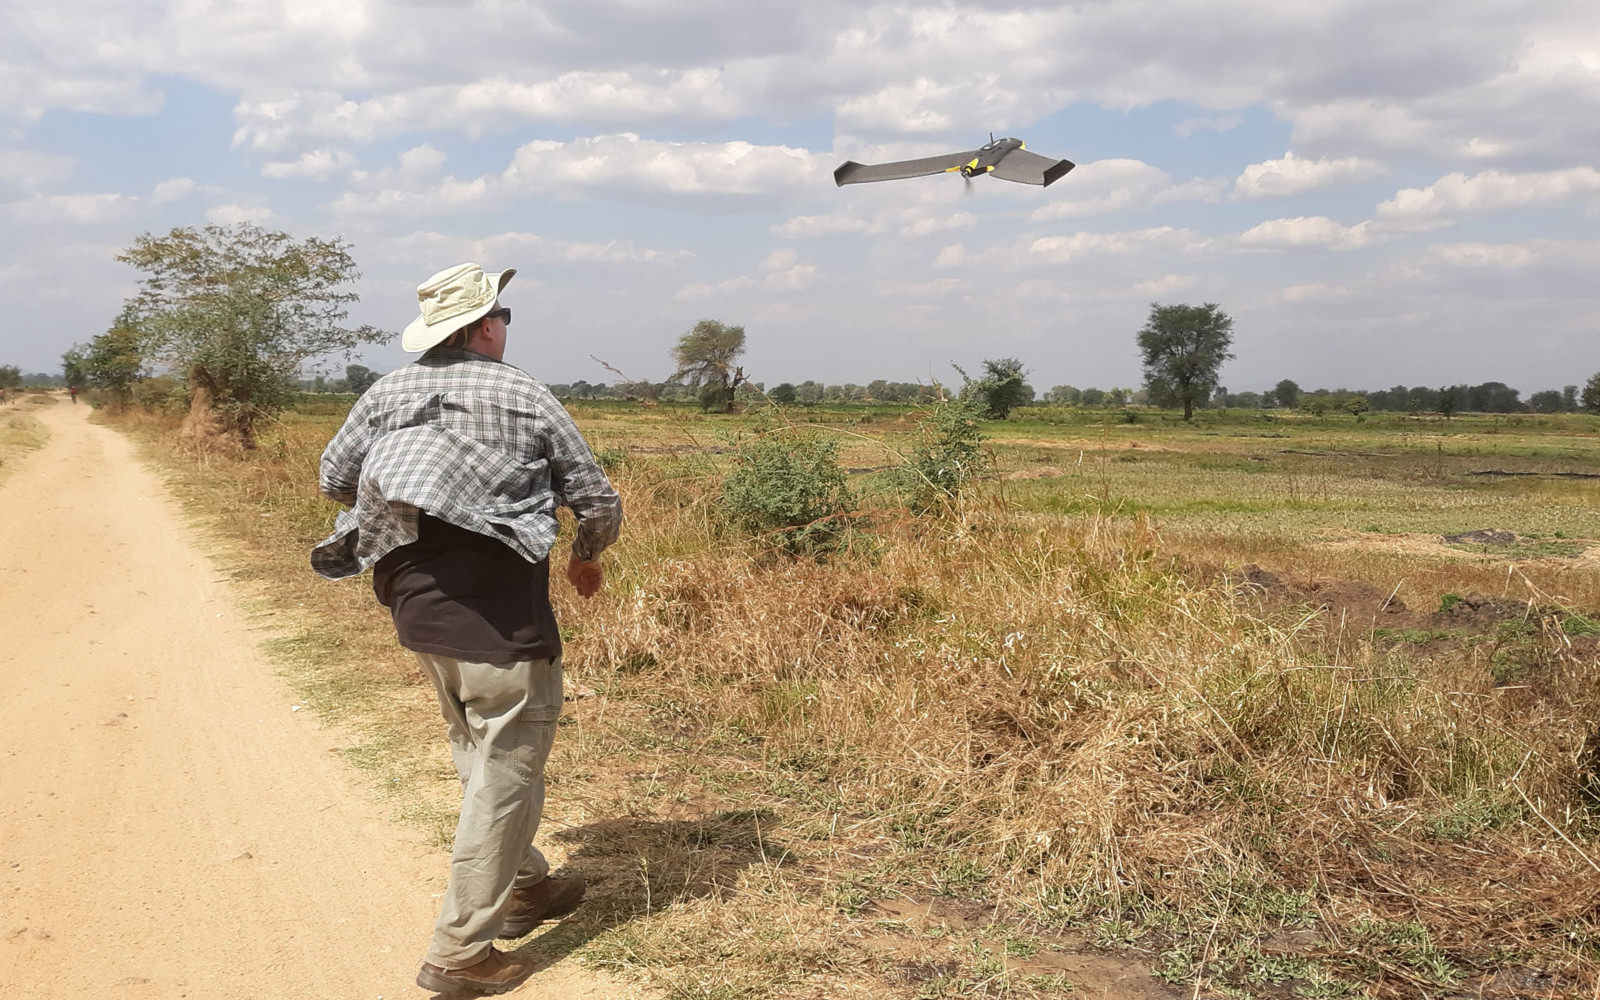 Anthropology professor uses drones to fight malaria in Africa